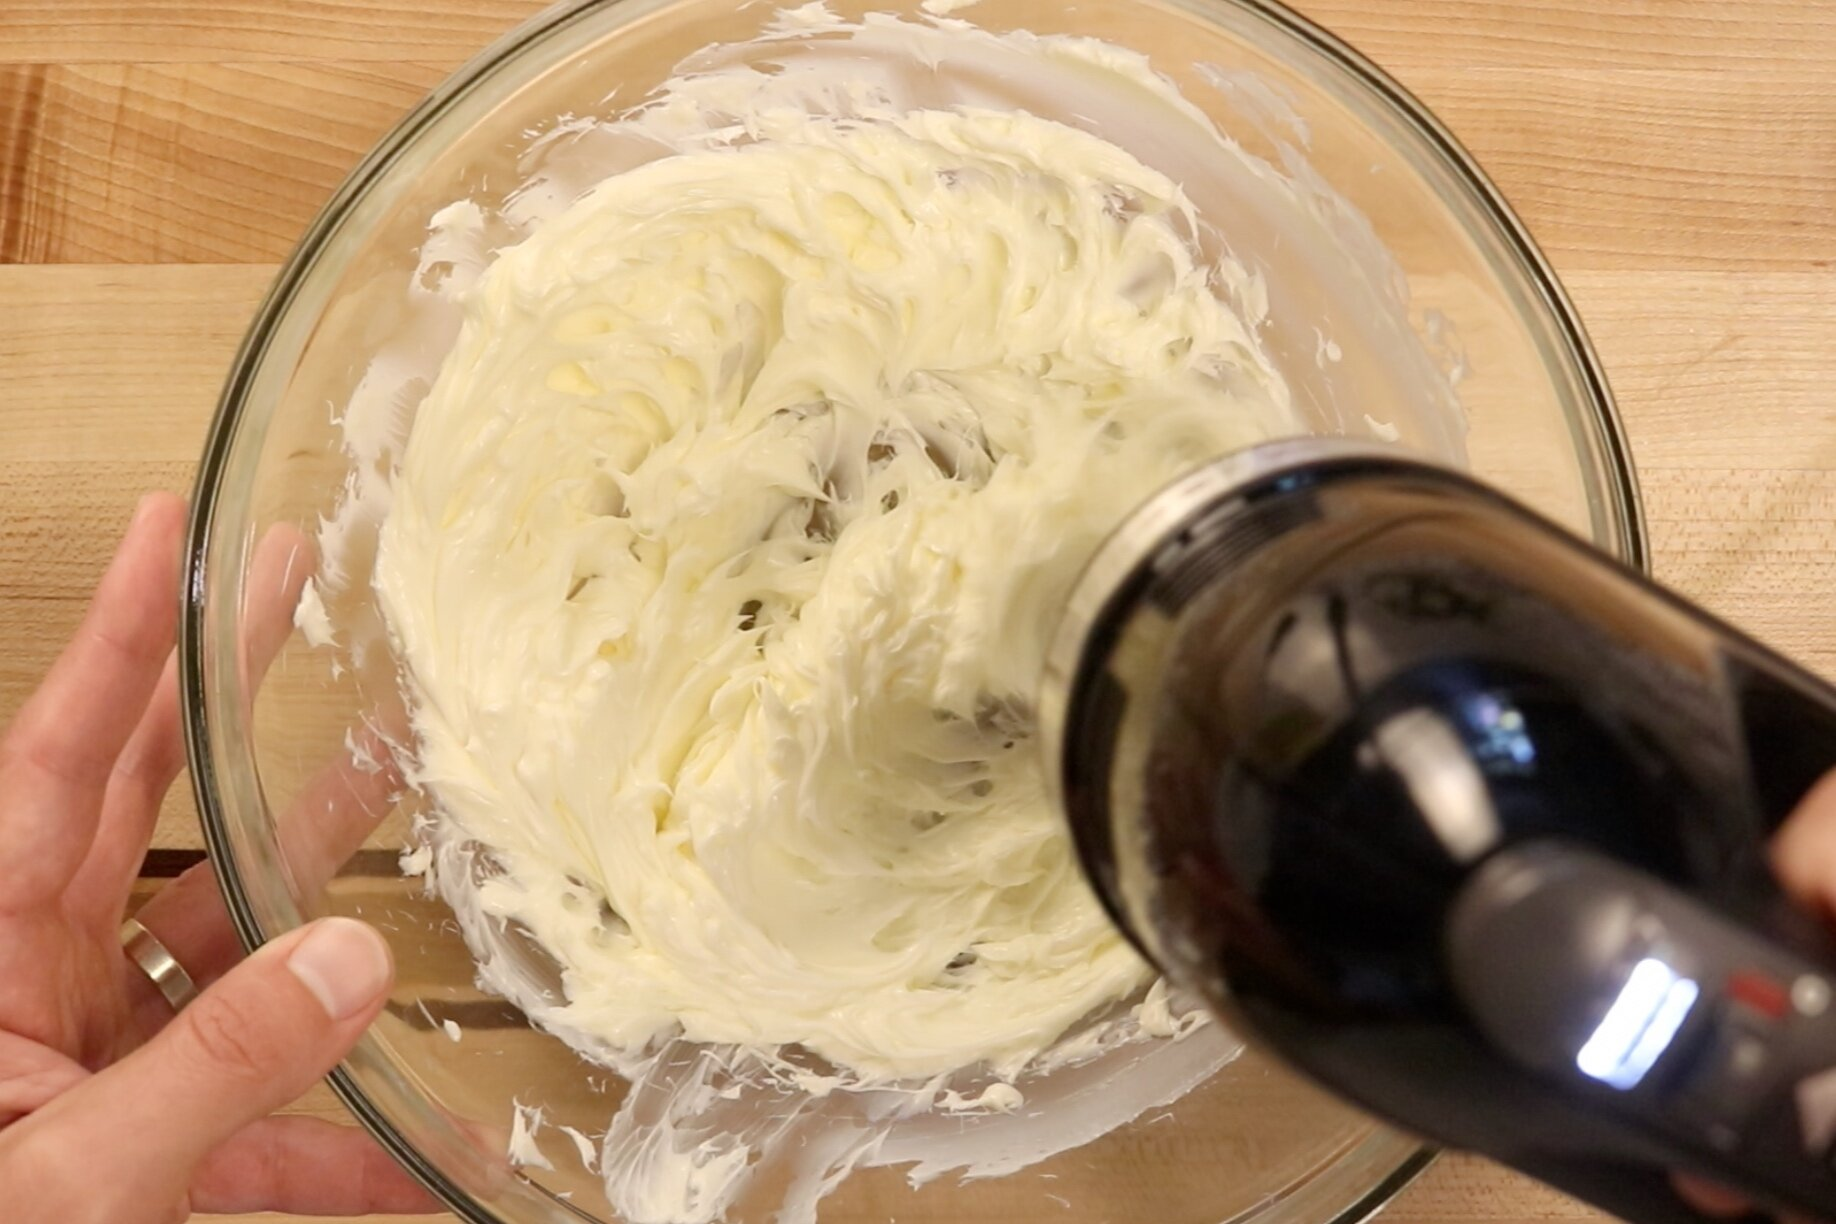 7. Gradually increase mixing speed to high and beat for 1-2 minutes and icing is light and fluffy. -